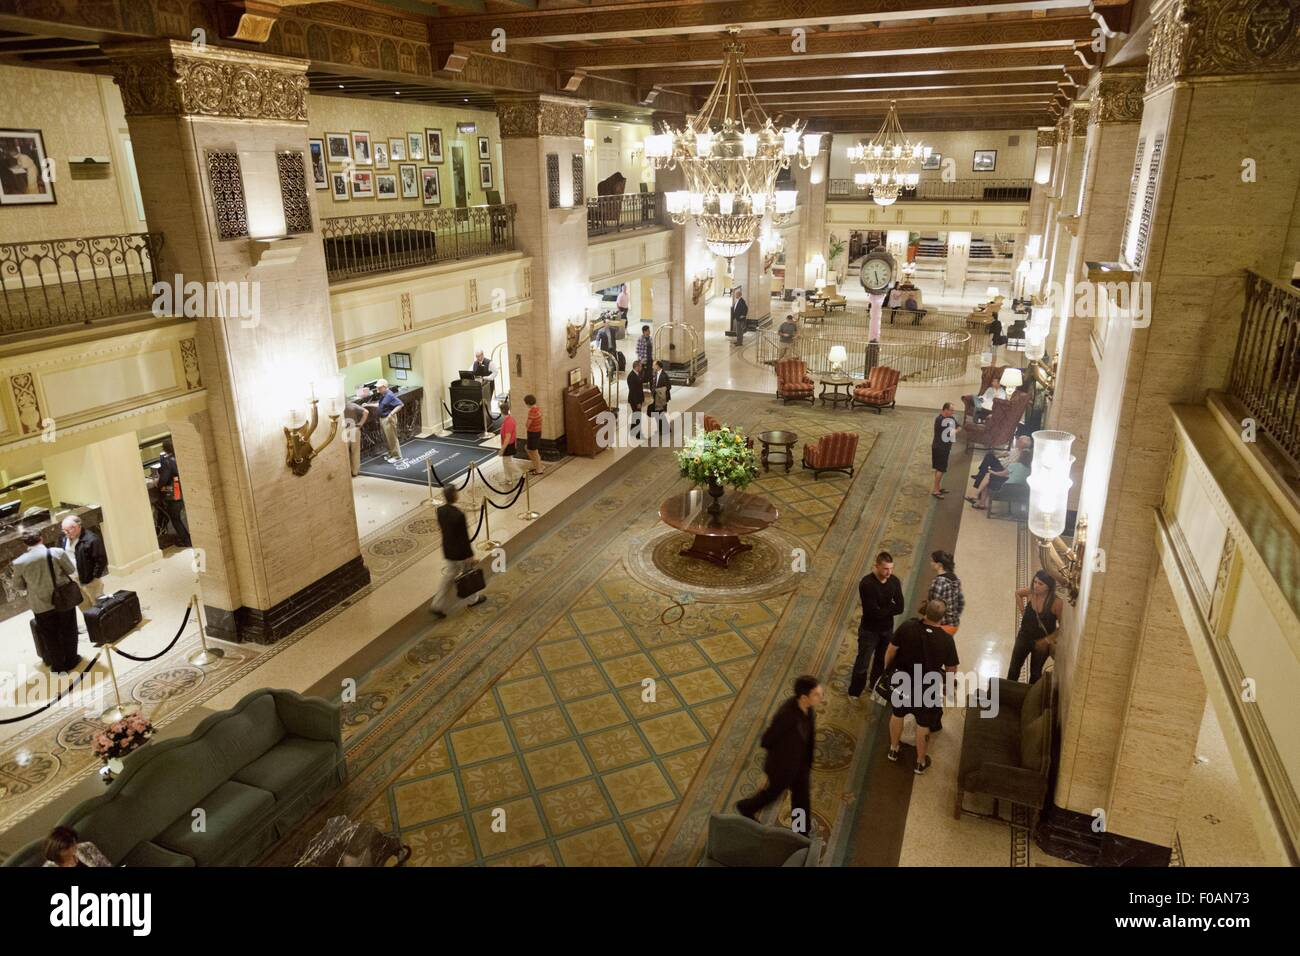 People at lobby of Fairmont Royal York Hotel, Toronto, Canada, elevated view - Stock Image